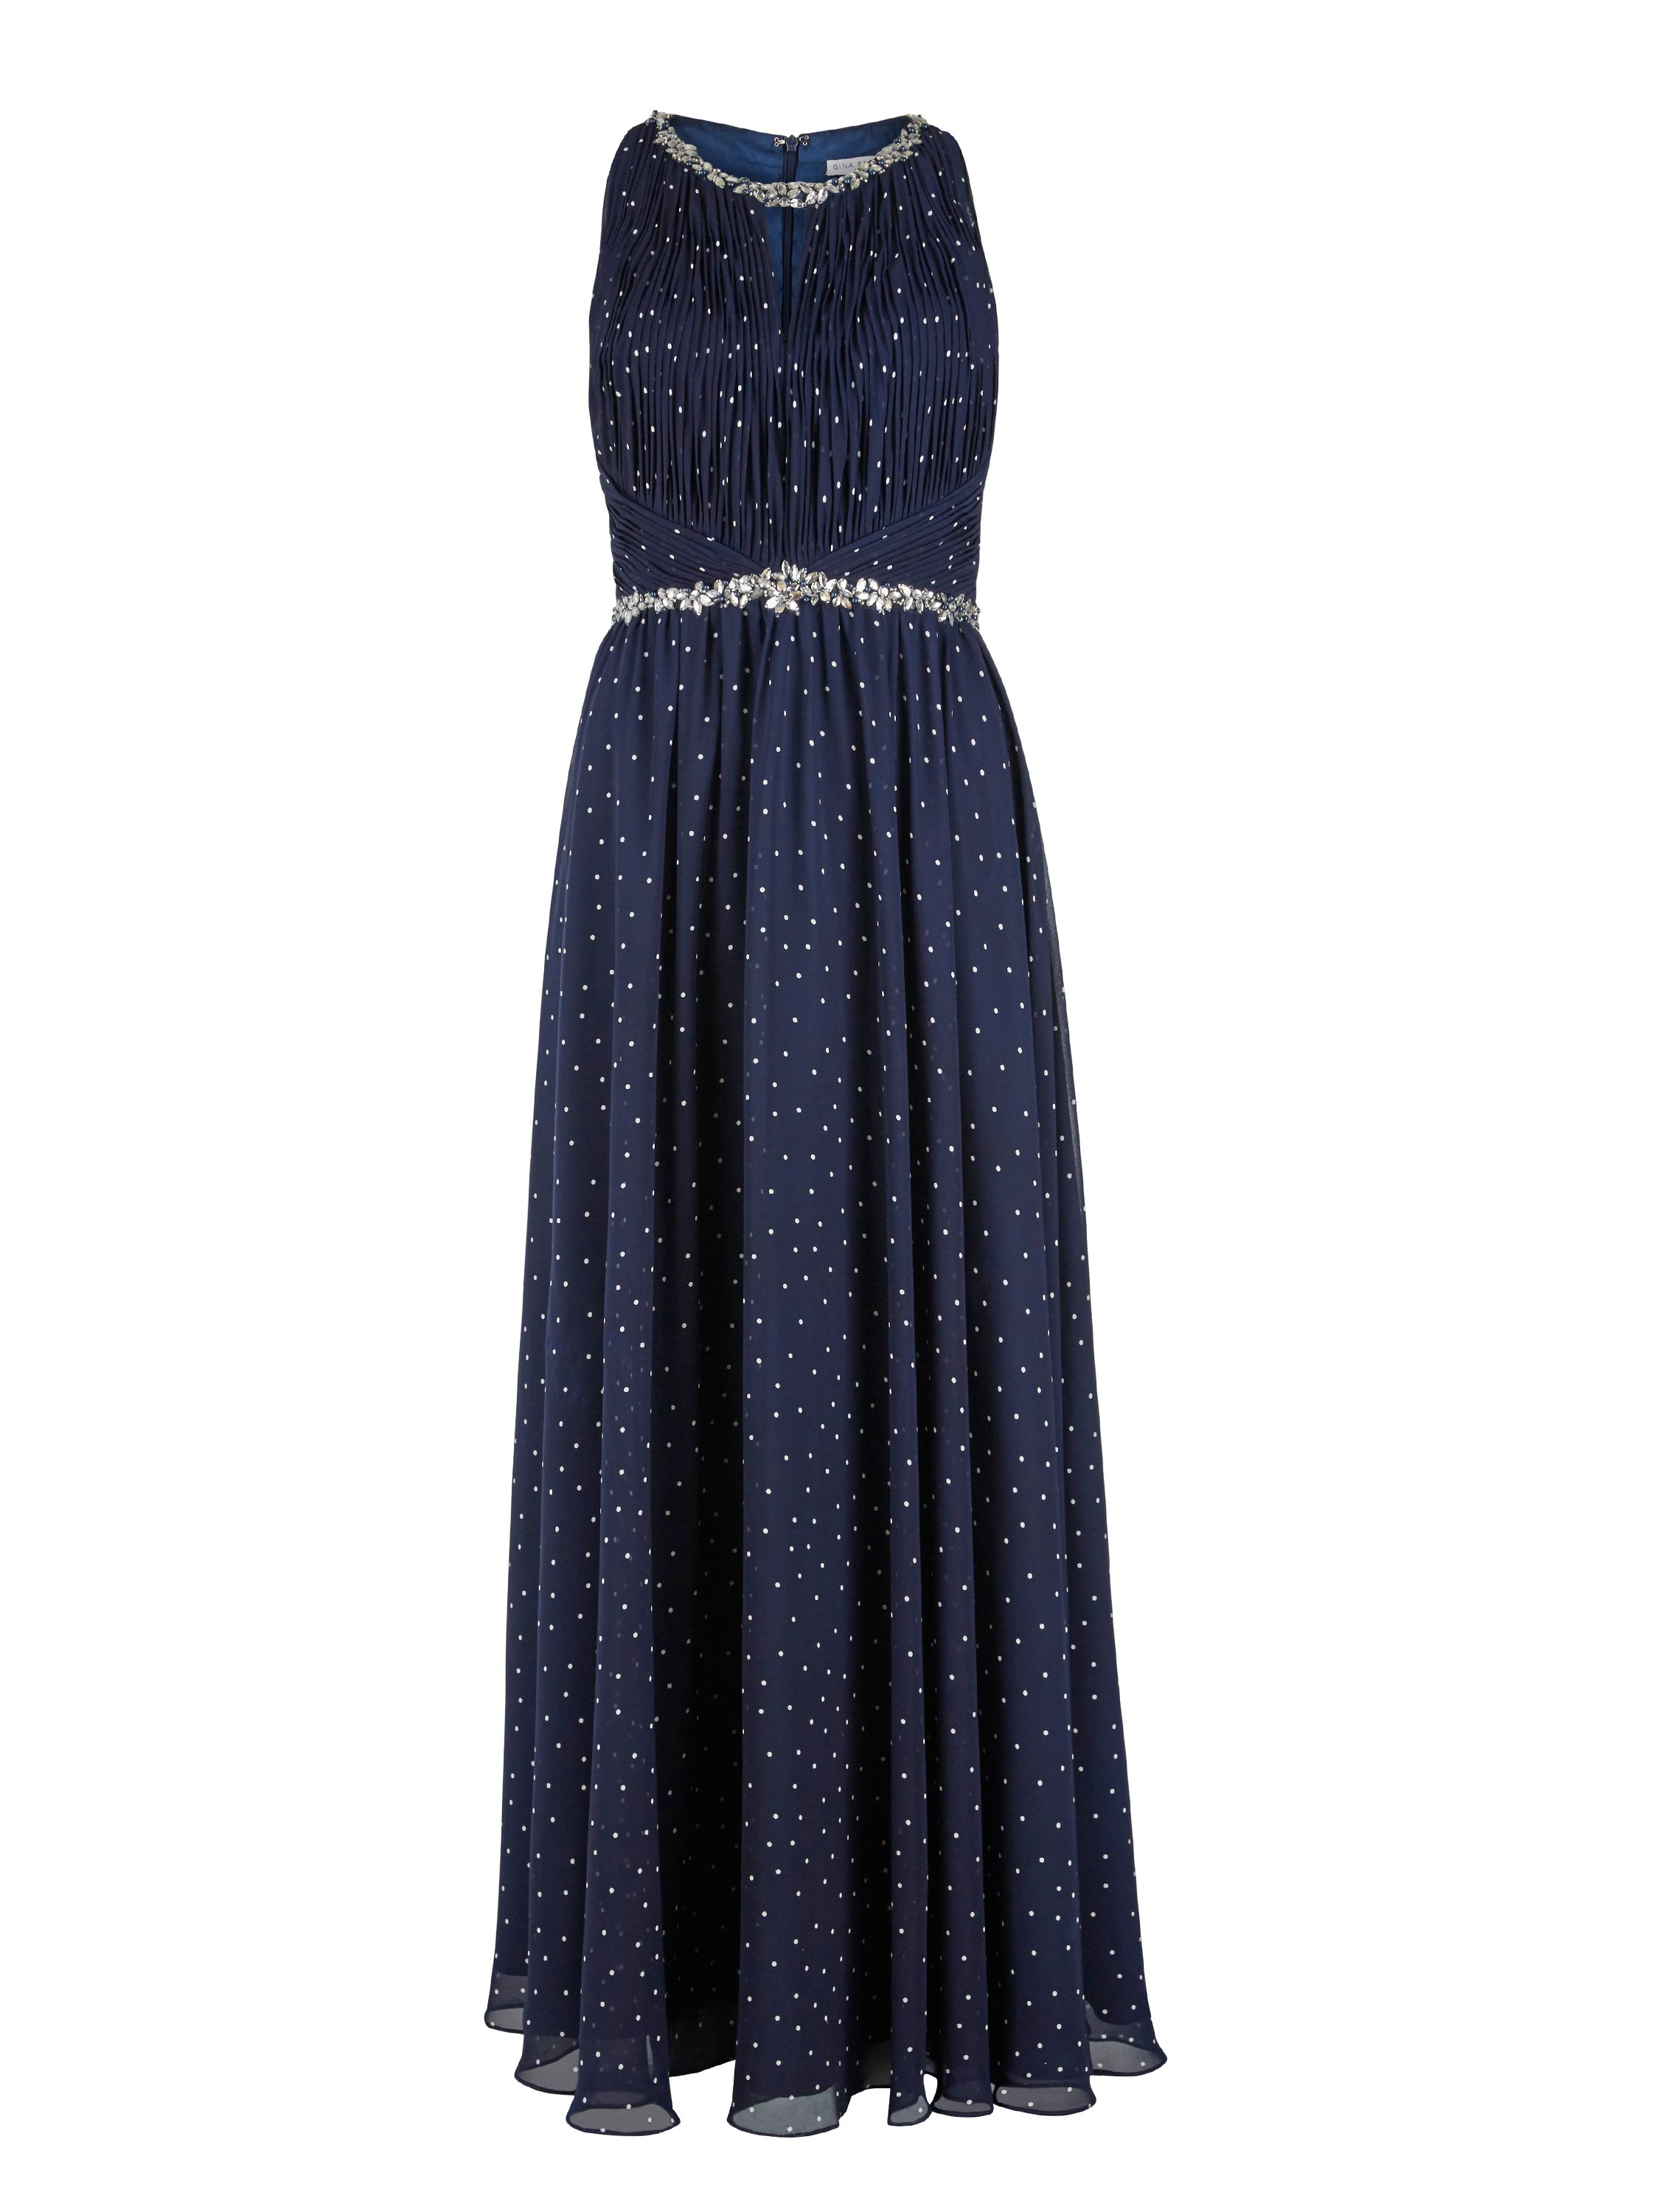 Gina Bacconi Long spotty dress, beaded waist and neck, Blue